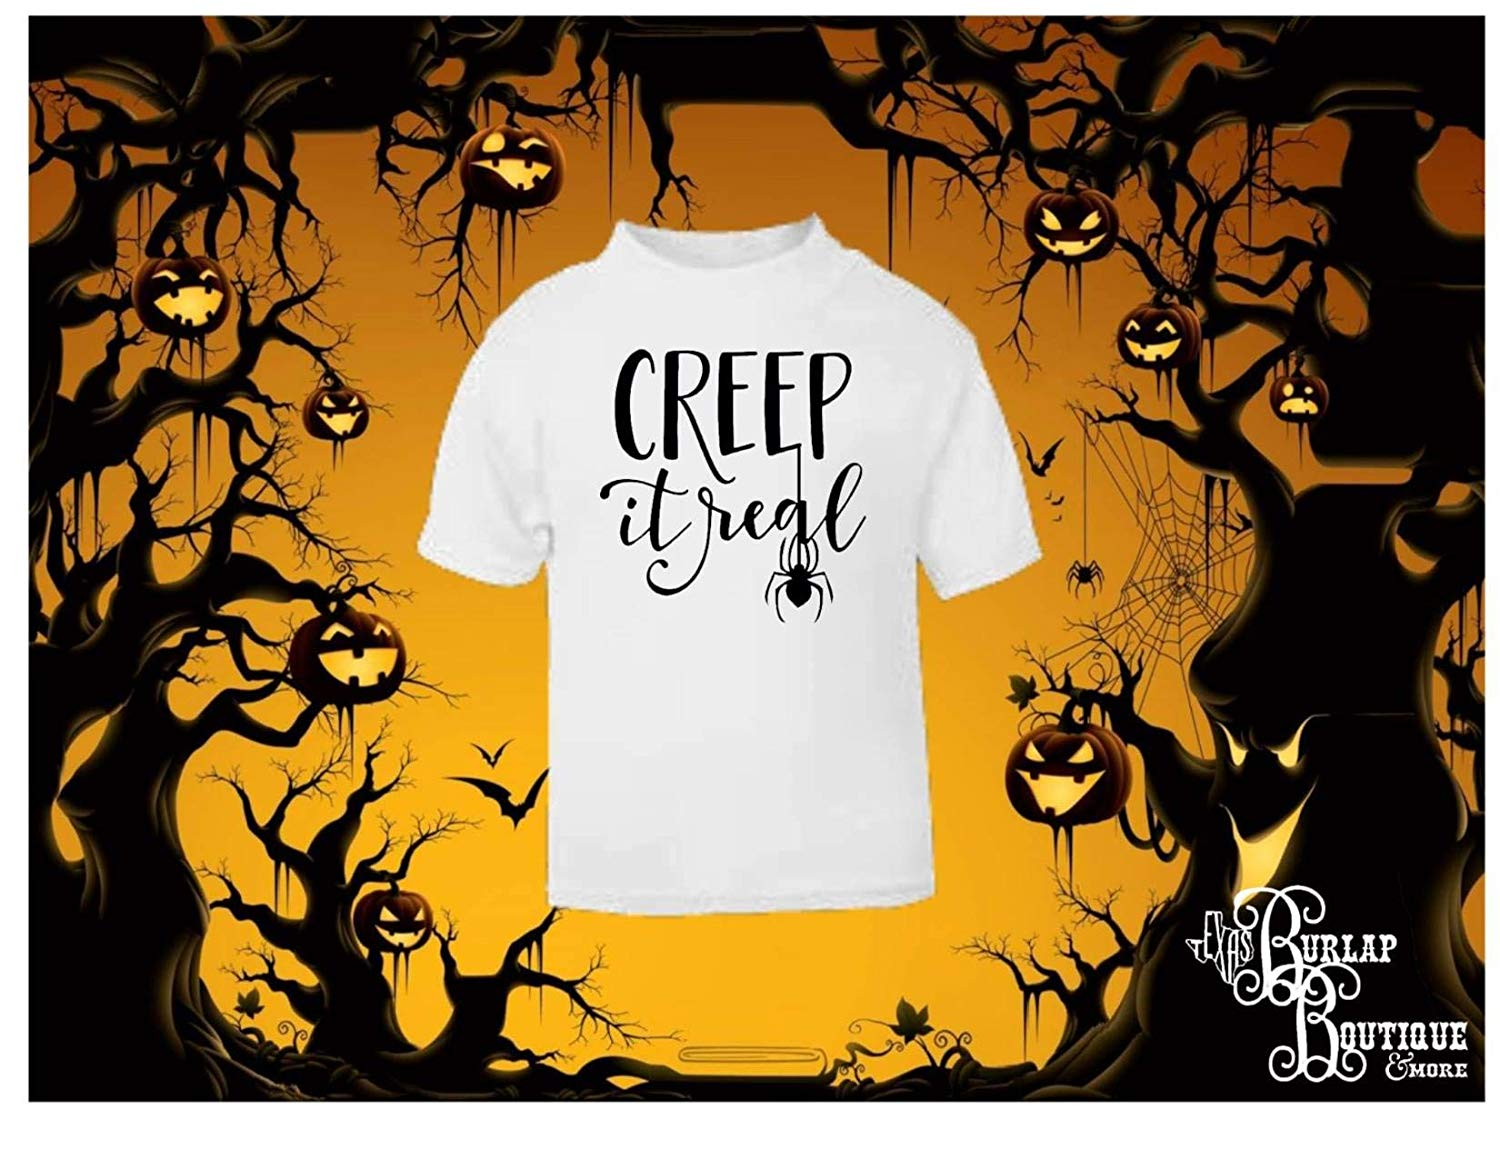 Halloween Themed Handmade Tee, Creep it Real, T - Shirt, Tshirt, Ladies, Mens, Toddlers and Youth Sizes S - 4XL Several colors